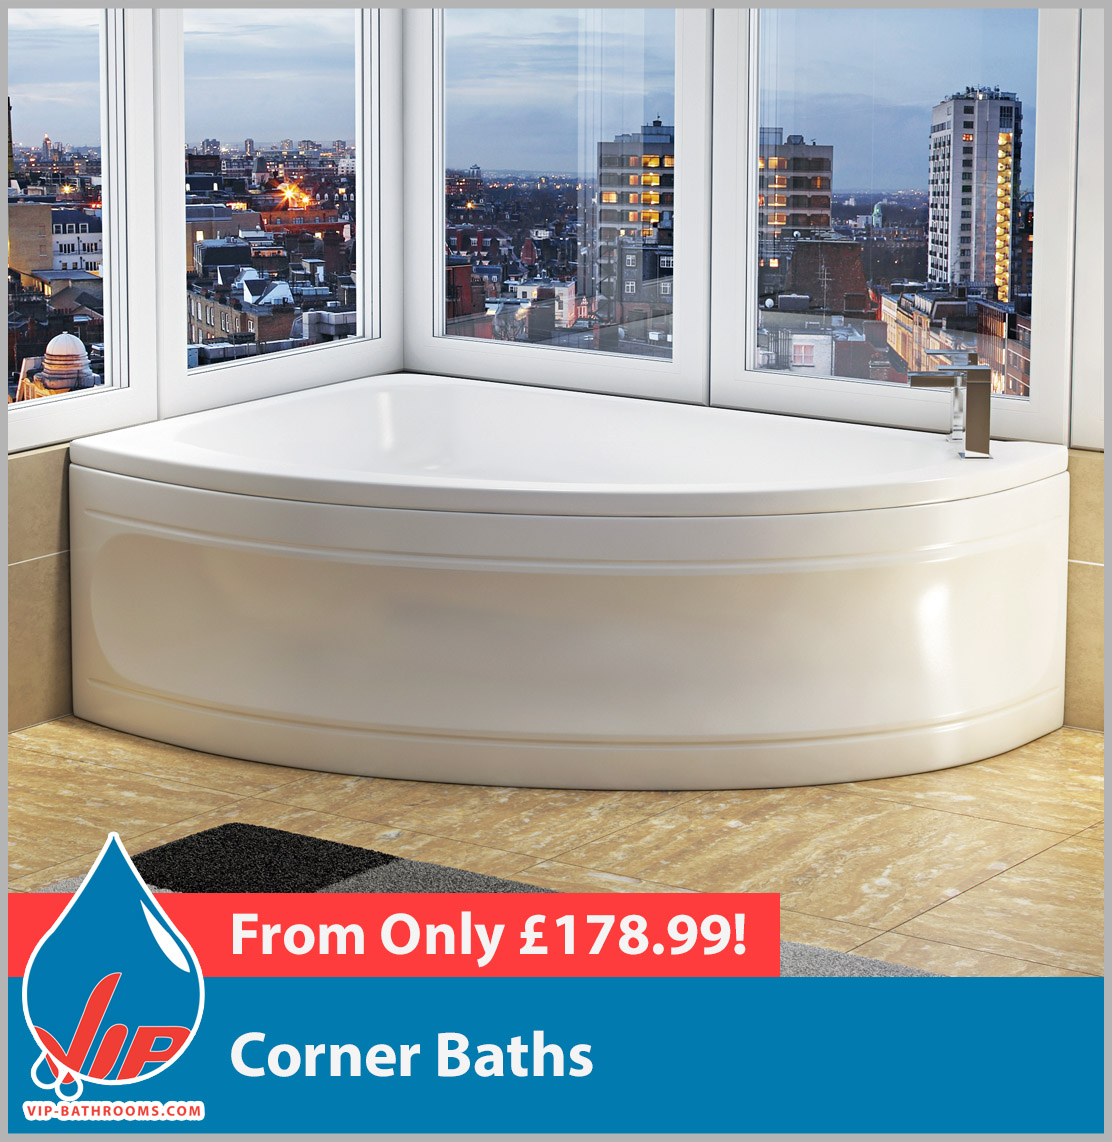 Click here to view our range of reliable, durable and superb value Corner Baths